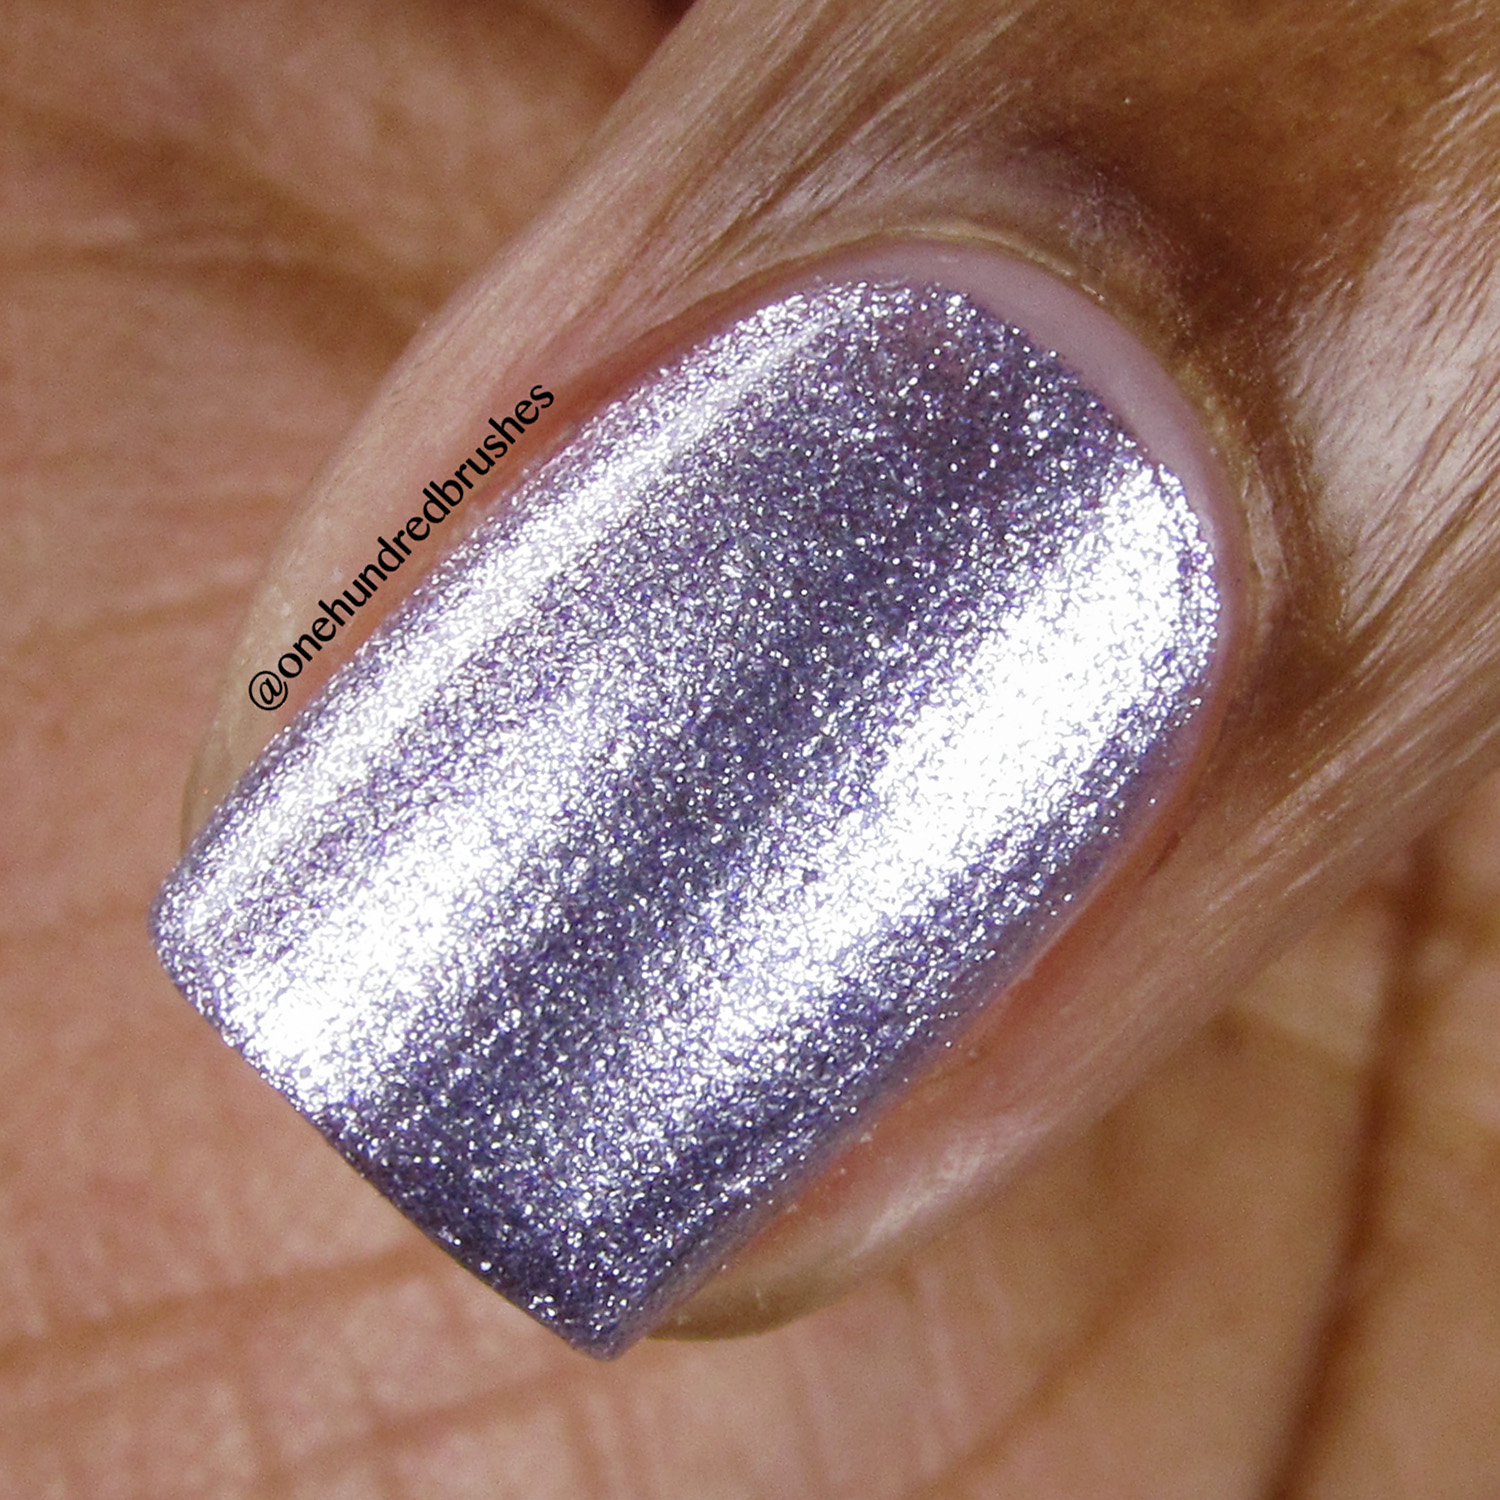 Lilac Mirror - macro - Indie Patty Lopes - psyches beau - mirror collection